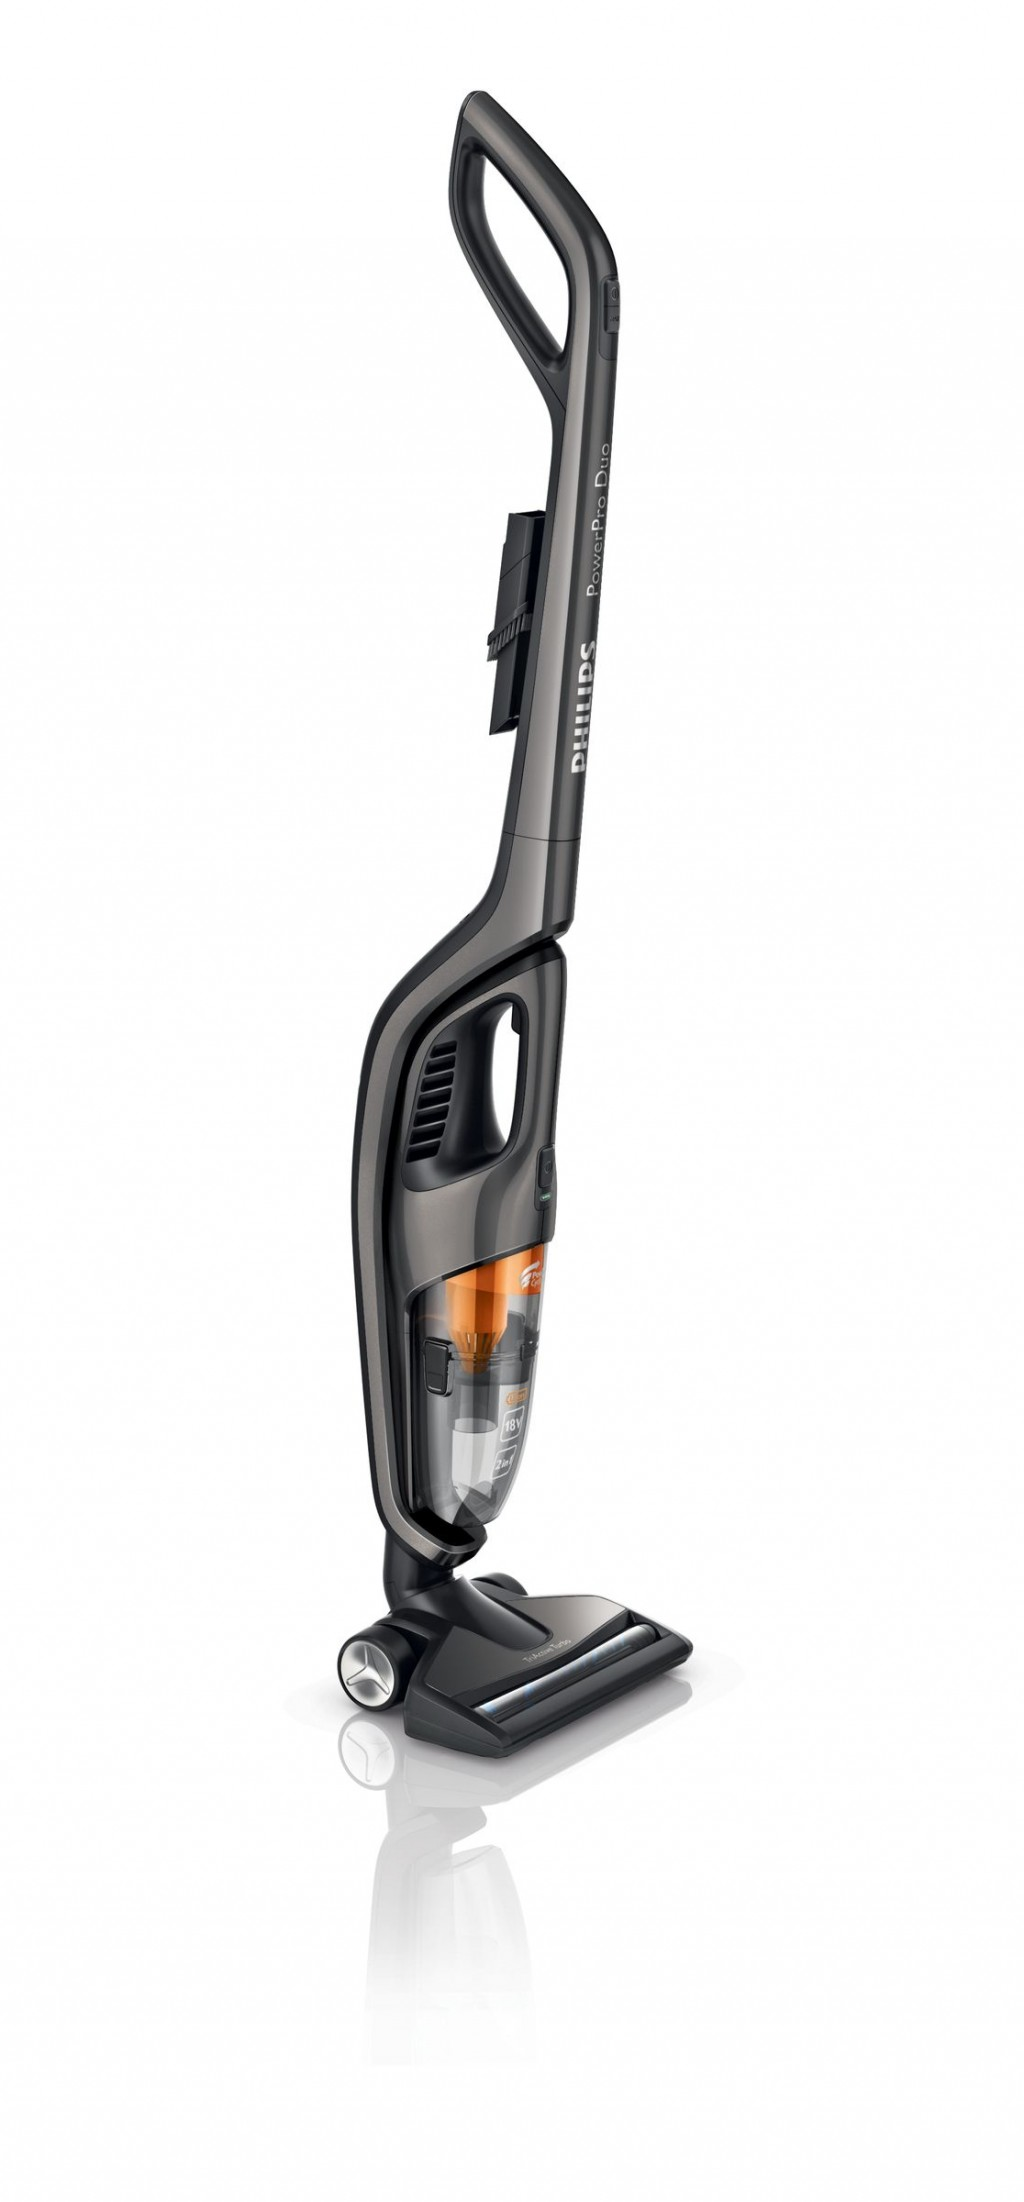 Philips Vacuum cleaner FC6168/01 Cordless operating, Handstick and Handheld, 18 V, Operating time (max) 40 min, 83 dB, Titanium, Warranty 24 month(s)